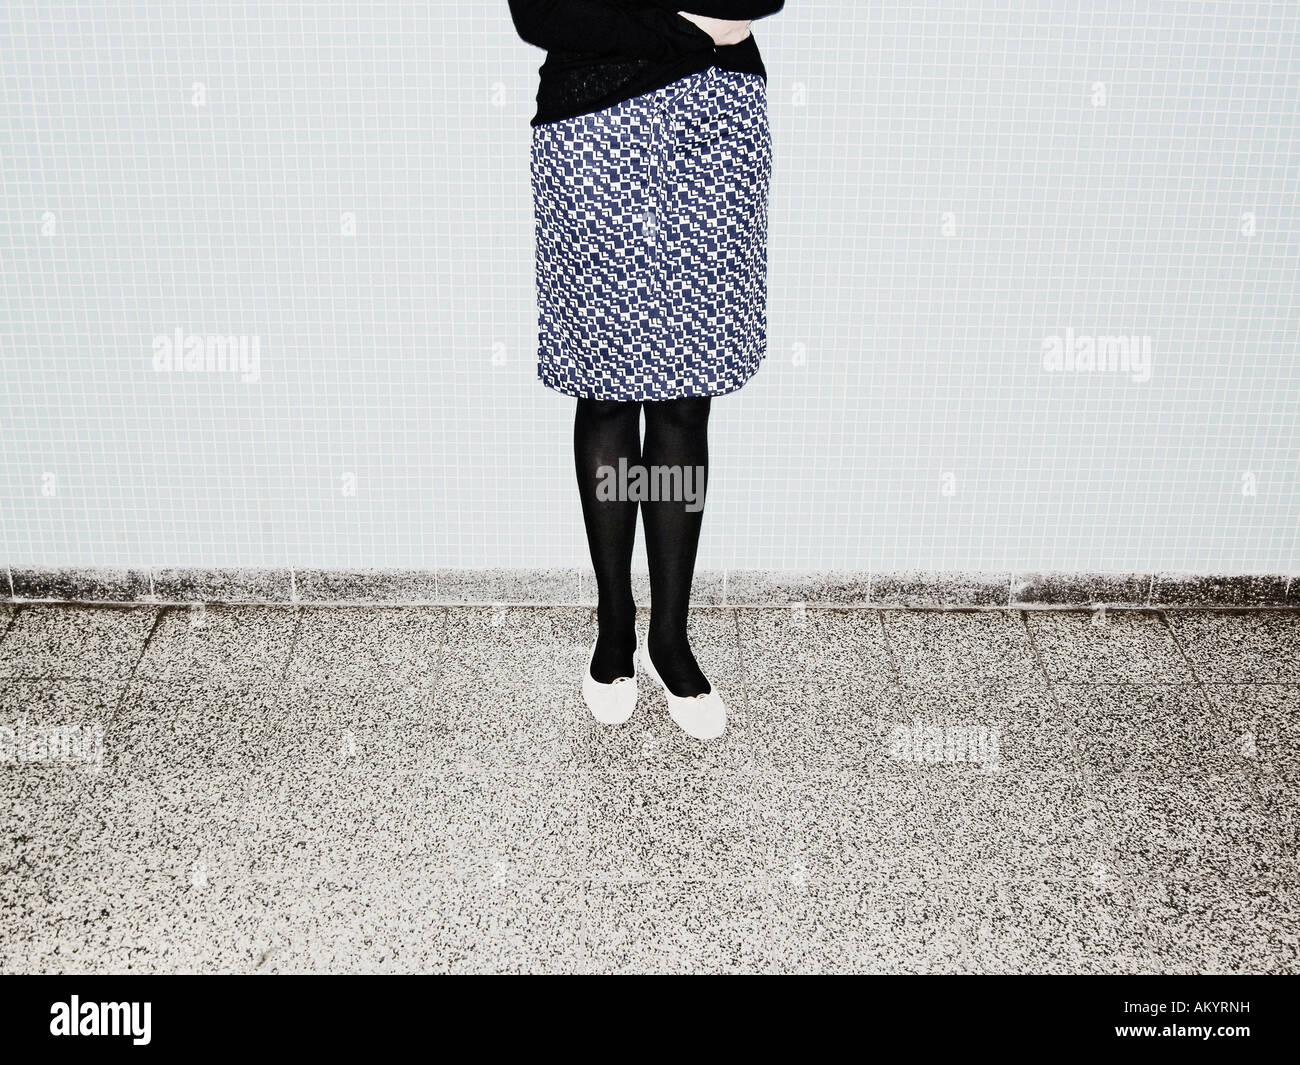 Young Woman With Chequered Skirt Standing In Front Of Wall Of Blue Tiles Berlin Germany - Stock Image